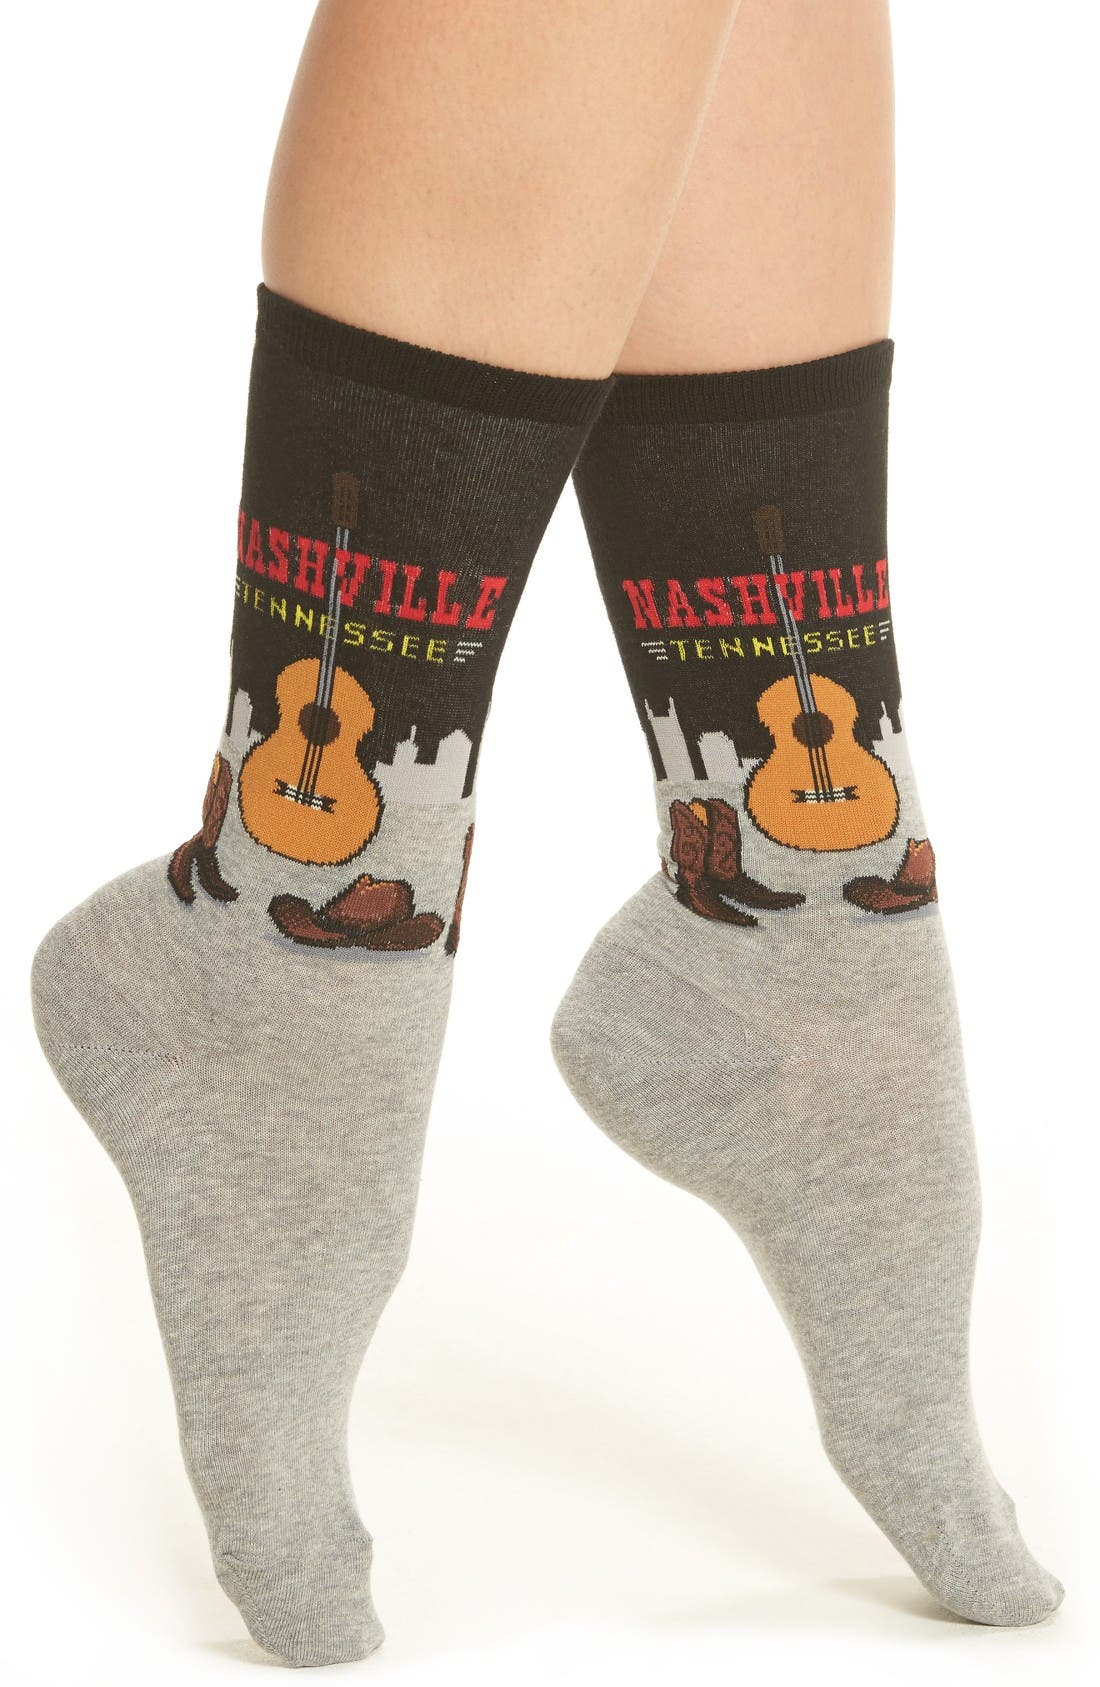 Hot Sox Nashville Crew Socks (3 for $15)